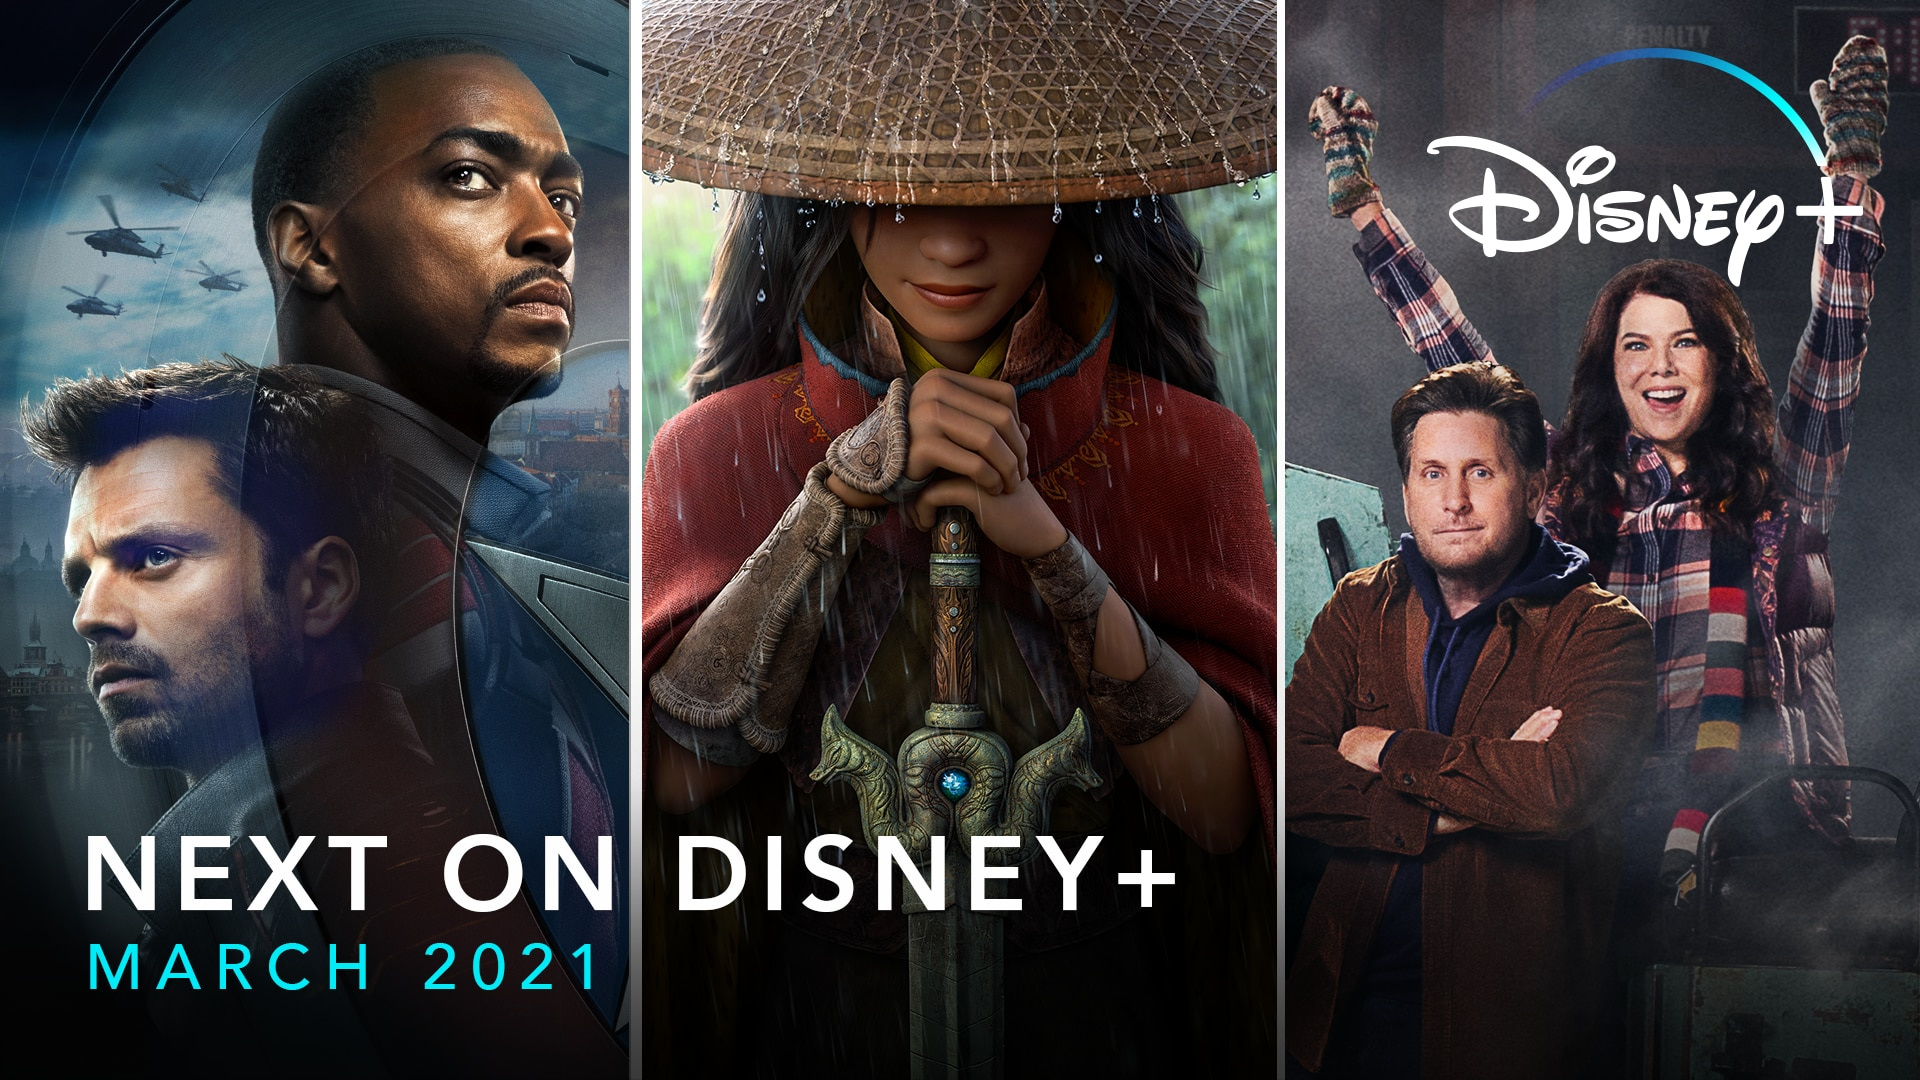 Next On Disney+ - March | Disney+